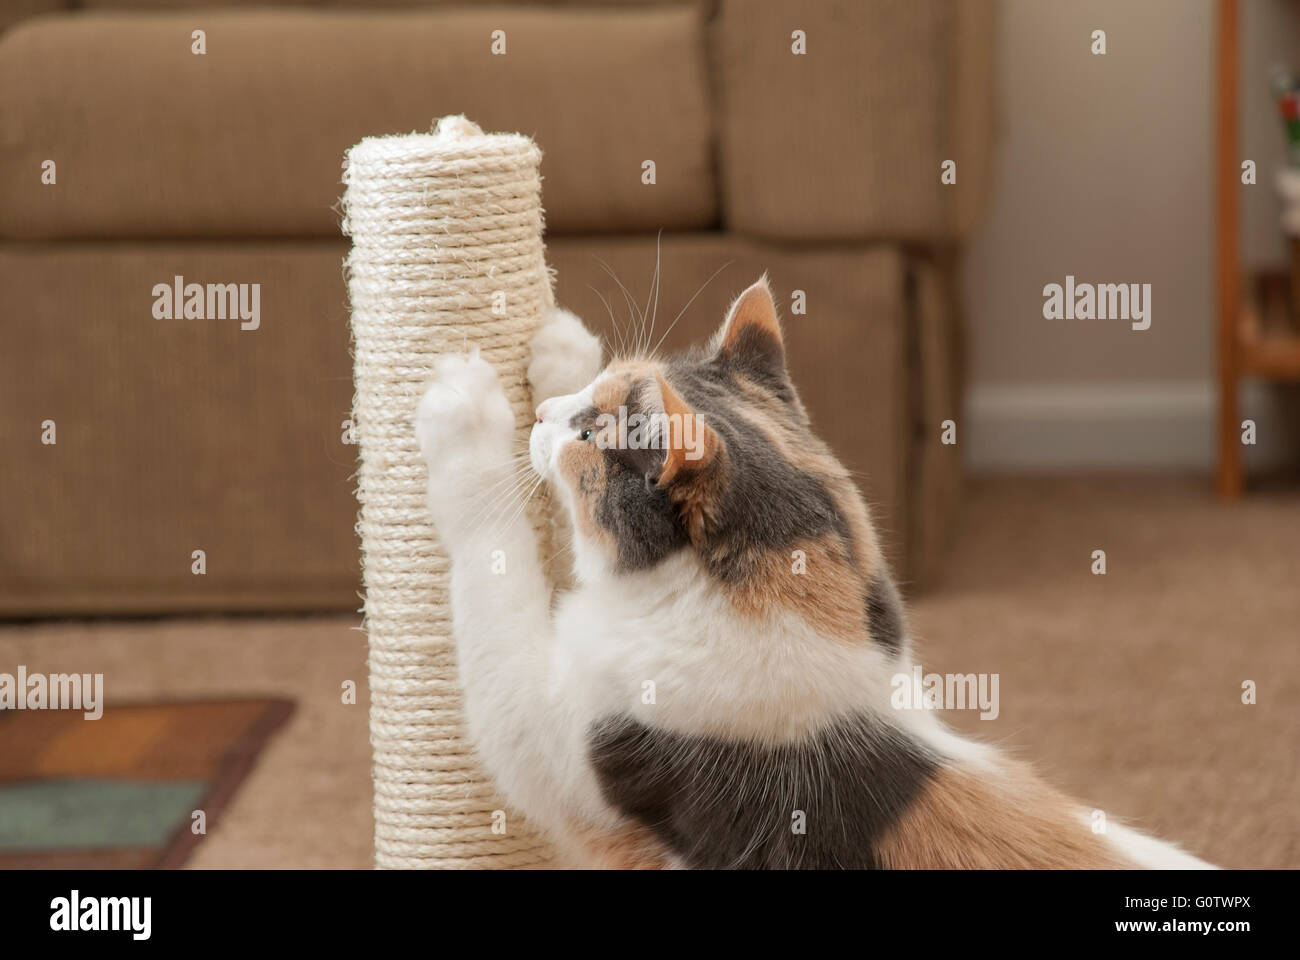 An adult domesticated cat using a scratching post. - Stock Image